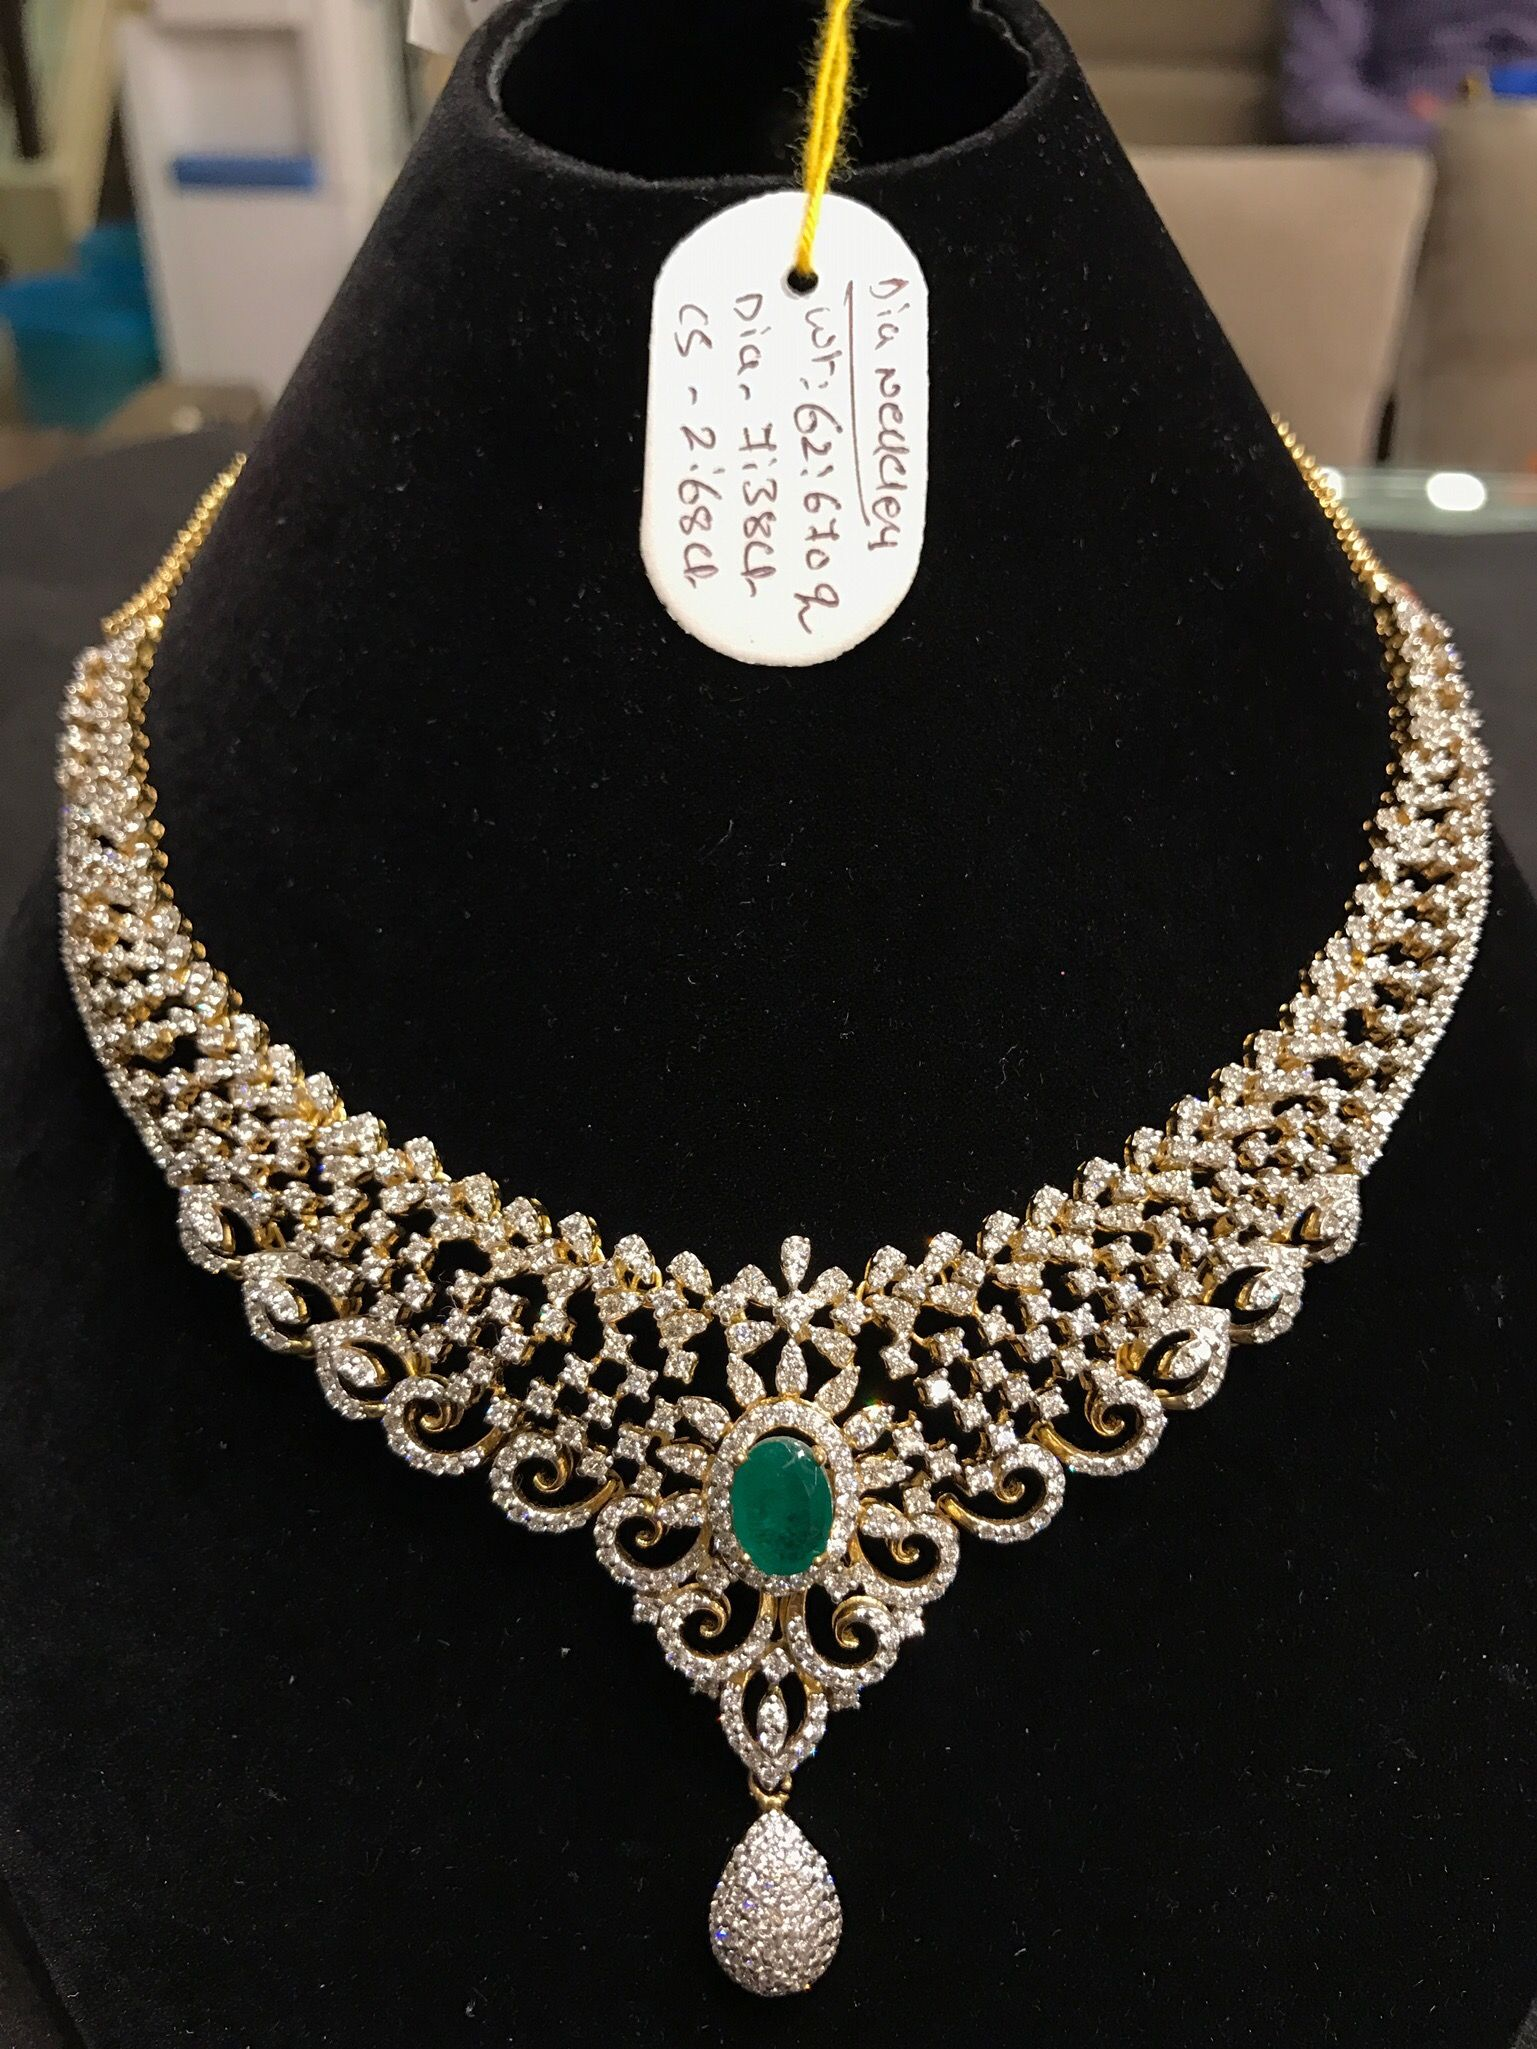 Beautiful diamond necklace with emerald gem | jewellery ...